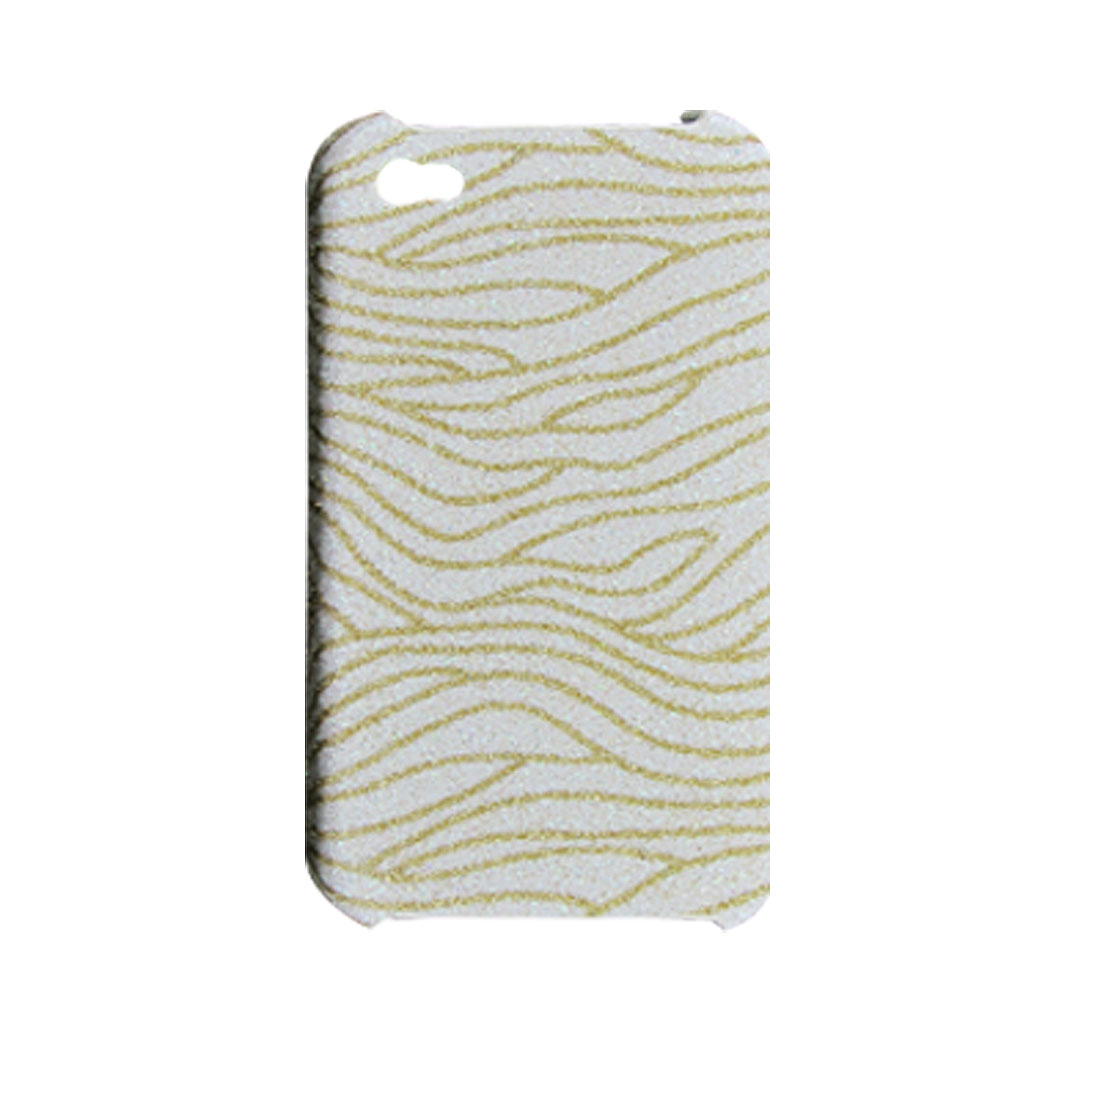 Glittery Zebra Print Skidproof Hard Back Cover for iPhone 4